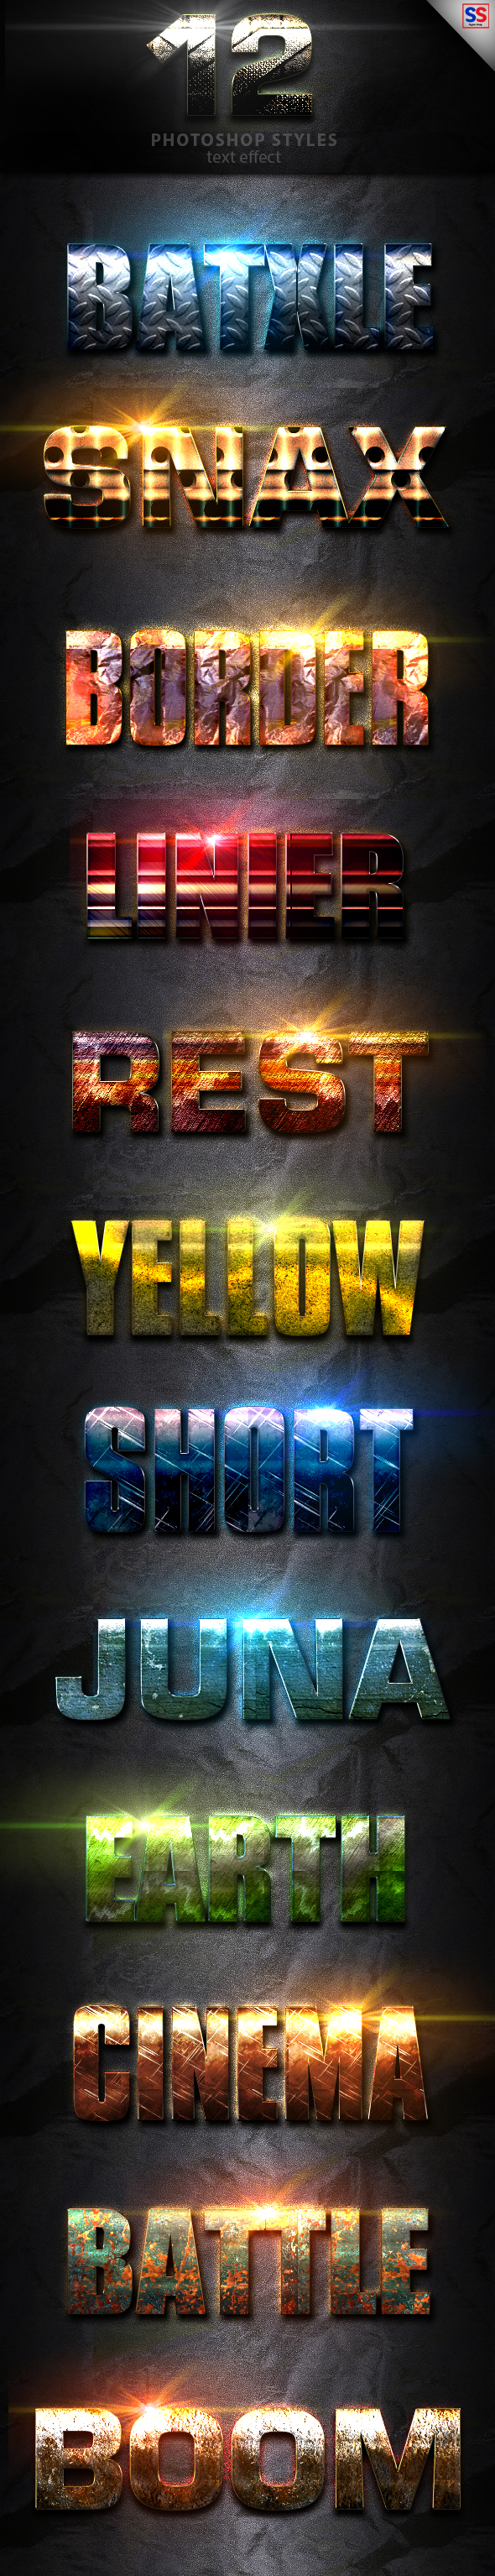 12 Light Photoshop Text Effect Vol 2 - Text Effects Styles